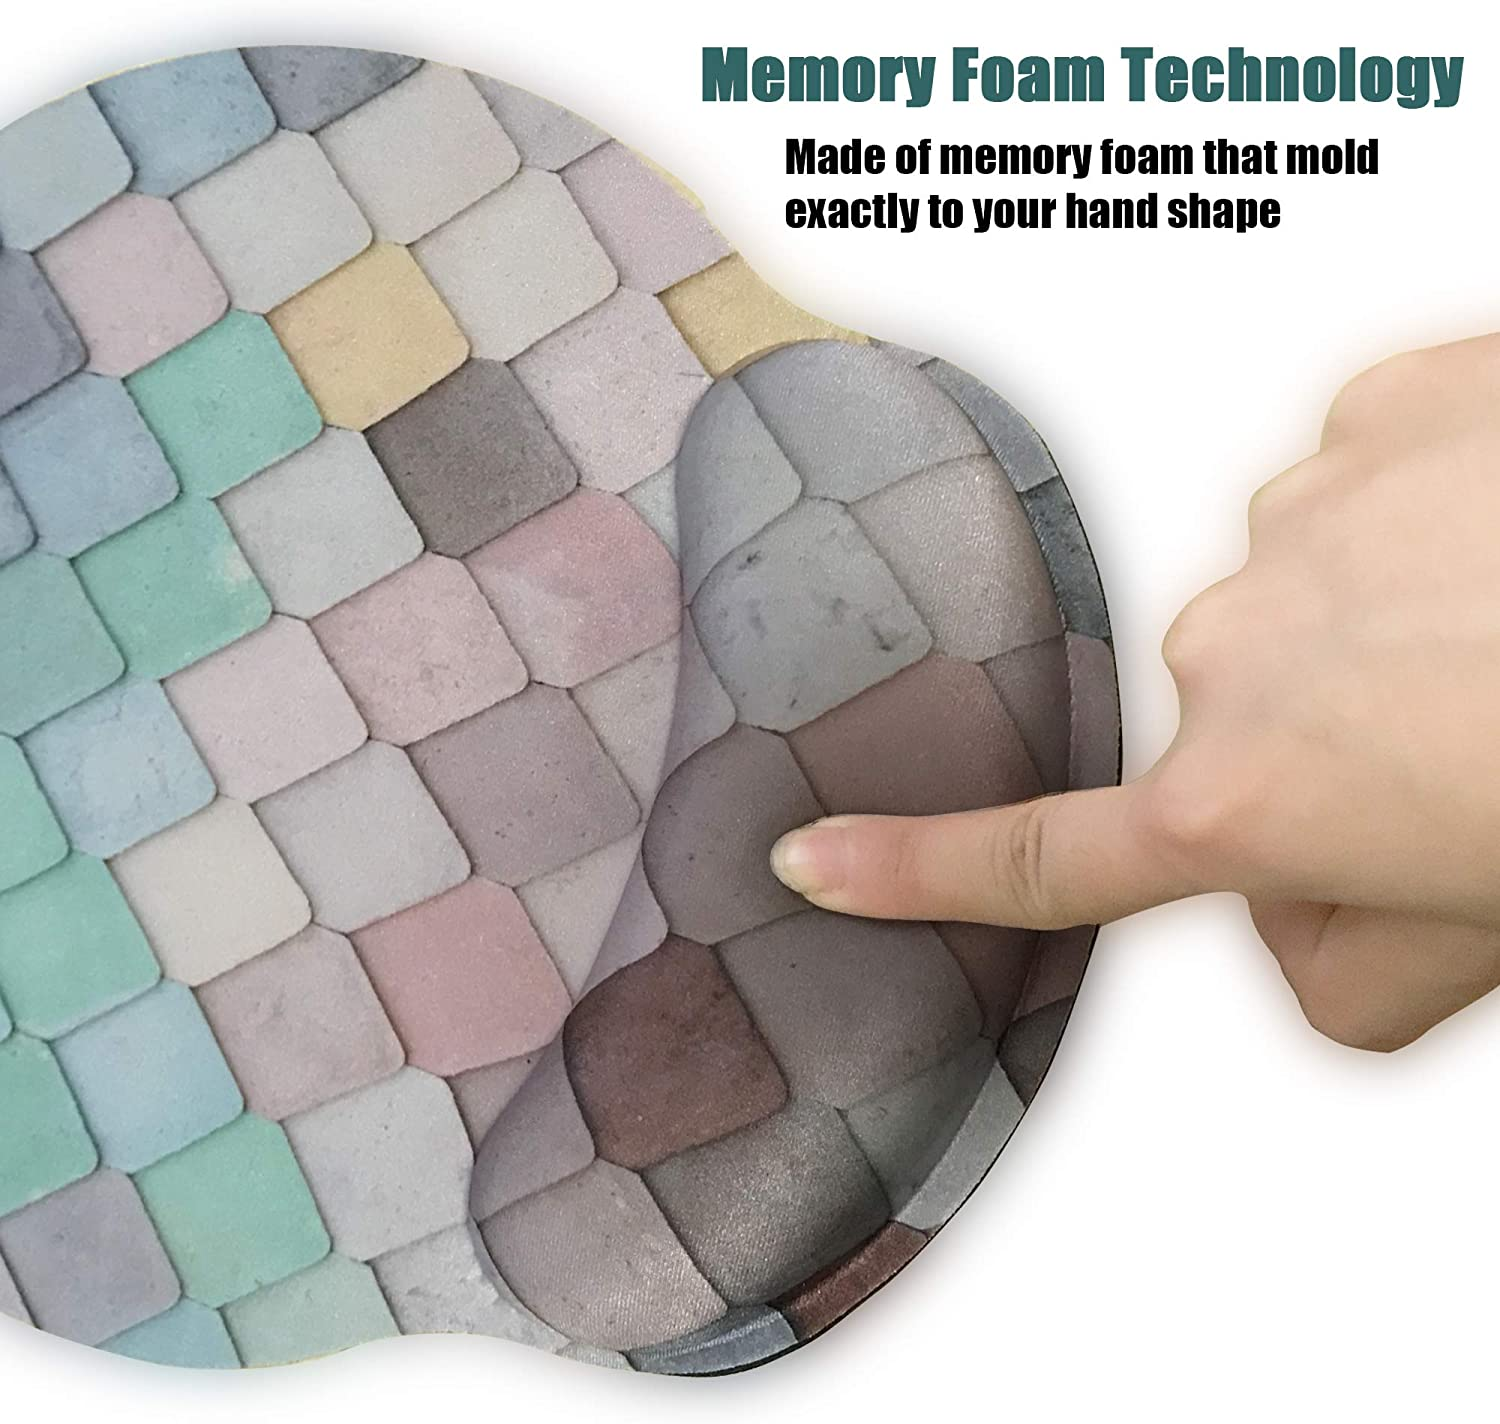 Working Ergonomic Mouse Pad with Wrist Support,Dooke Cute Wrist Pad with Non-Slip Rubber Base for Computer Laptop Home Office Gaming Easy Typing /& Pain Relief